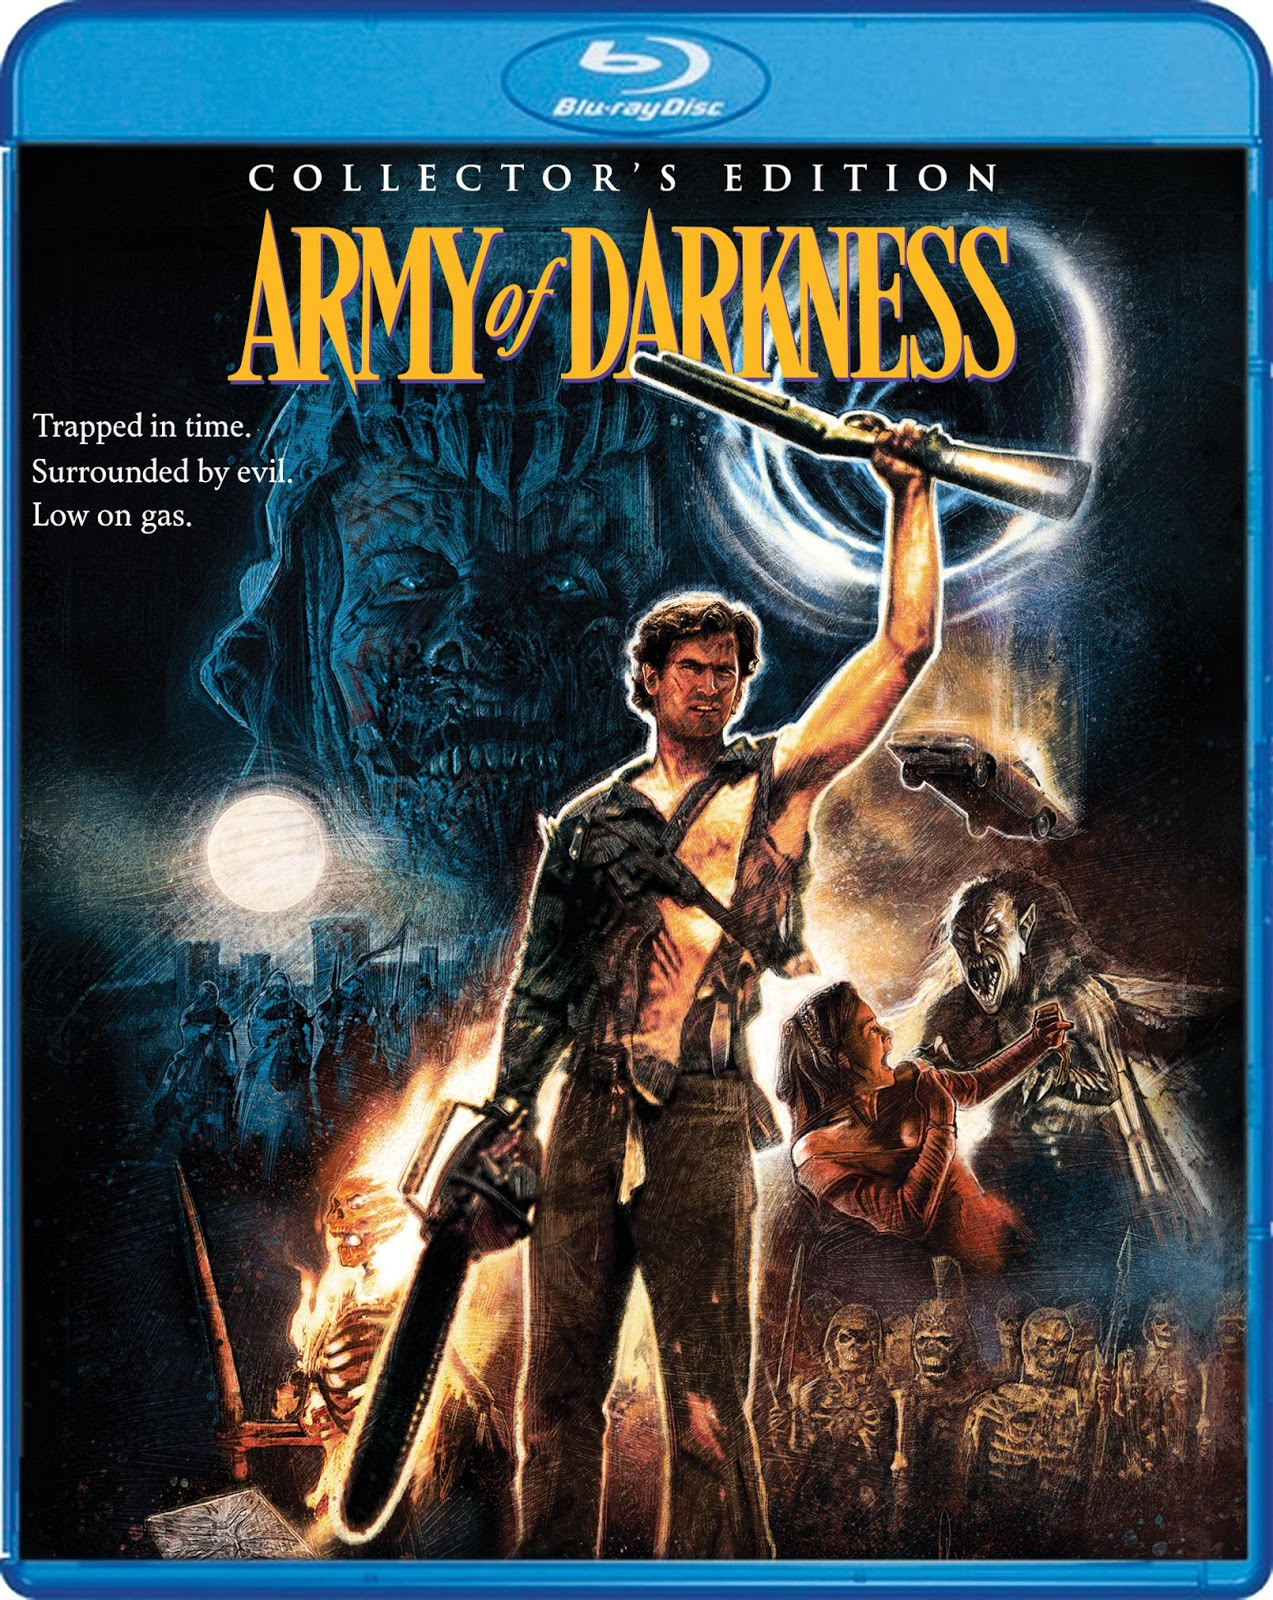 Rupert Pupkin Speaks: Scream Factory - ARMY OF DARKNESS on Blu-ray